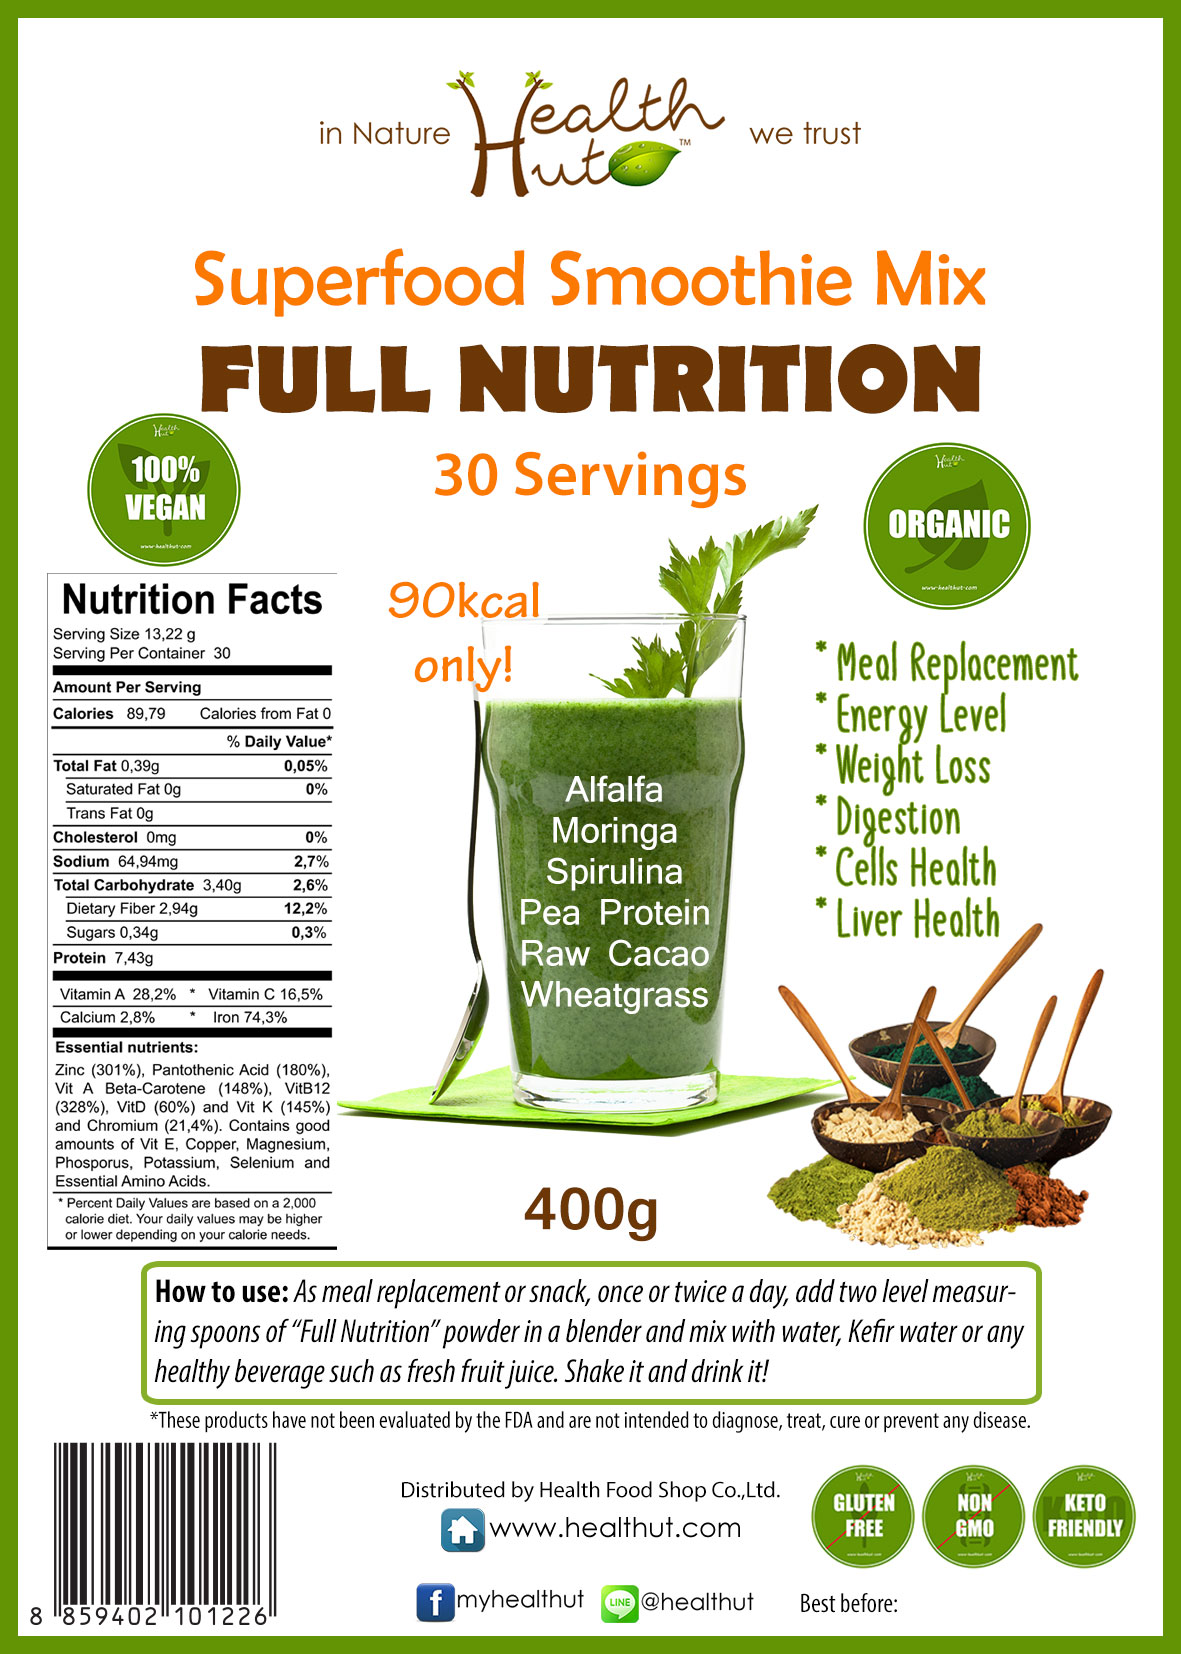 Superfood Mix - Full Nutrition